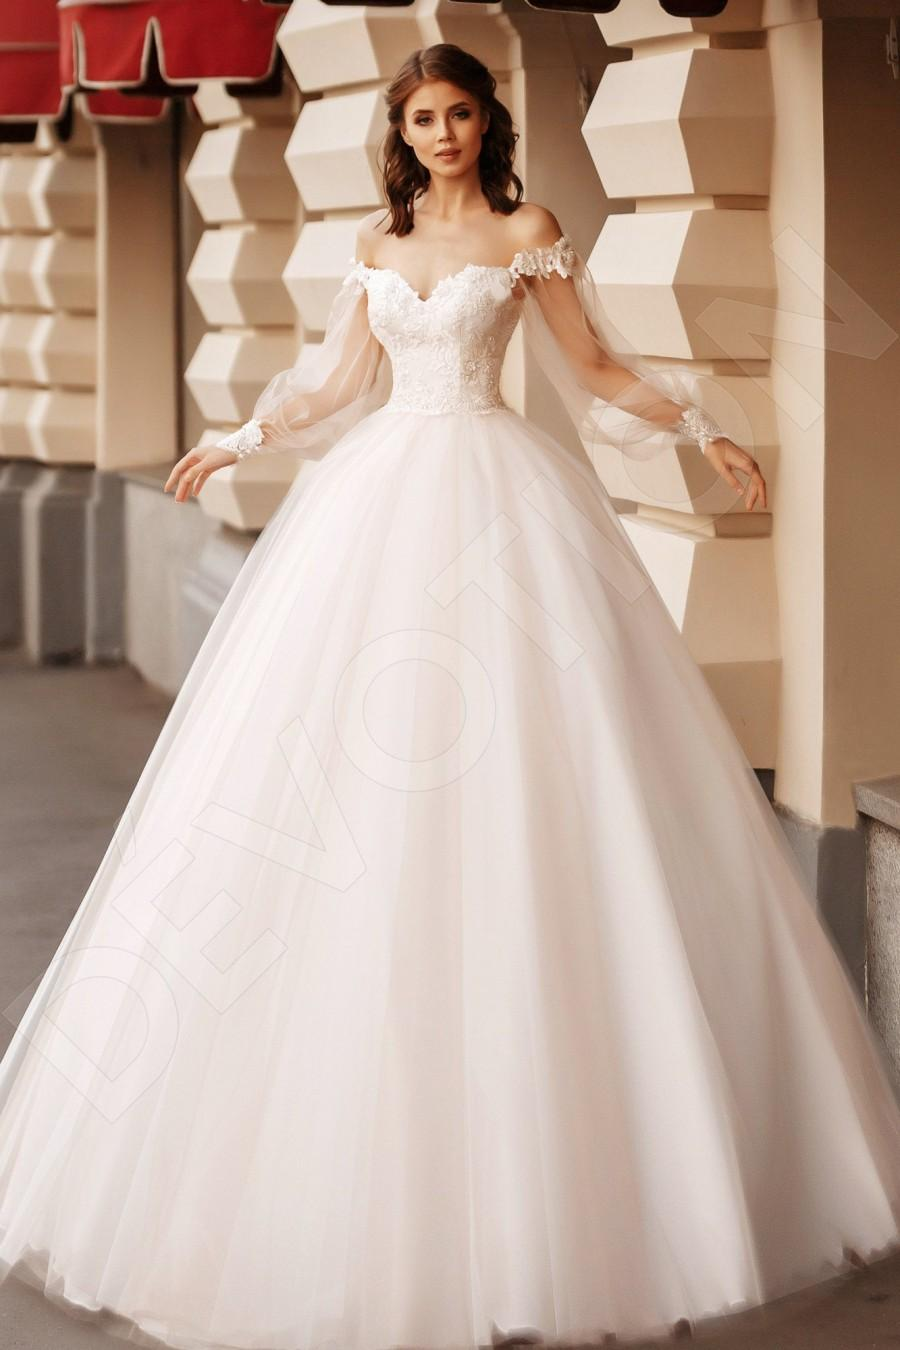 زفاف - Individual size Princess/Ball Gown silhouette Camilla wedding dress. Elegant style by DevotionDresses